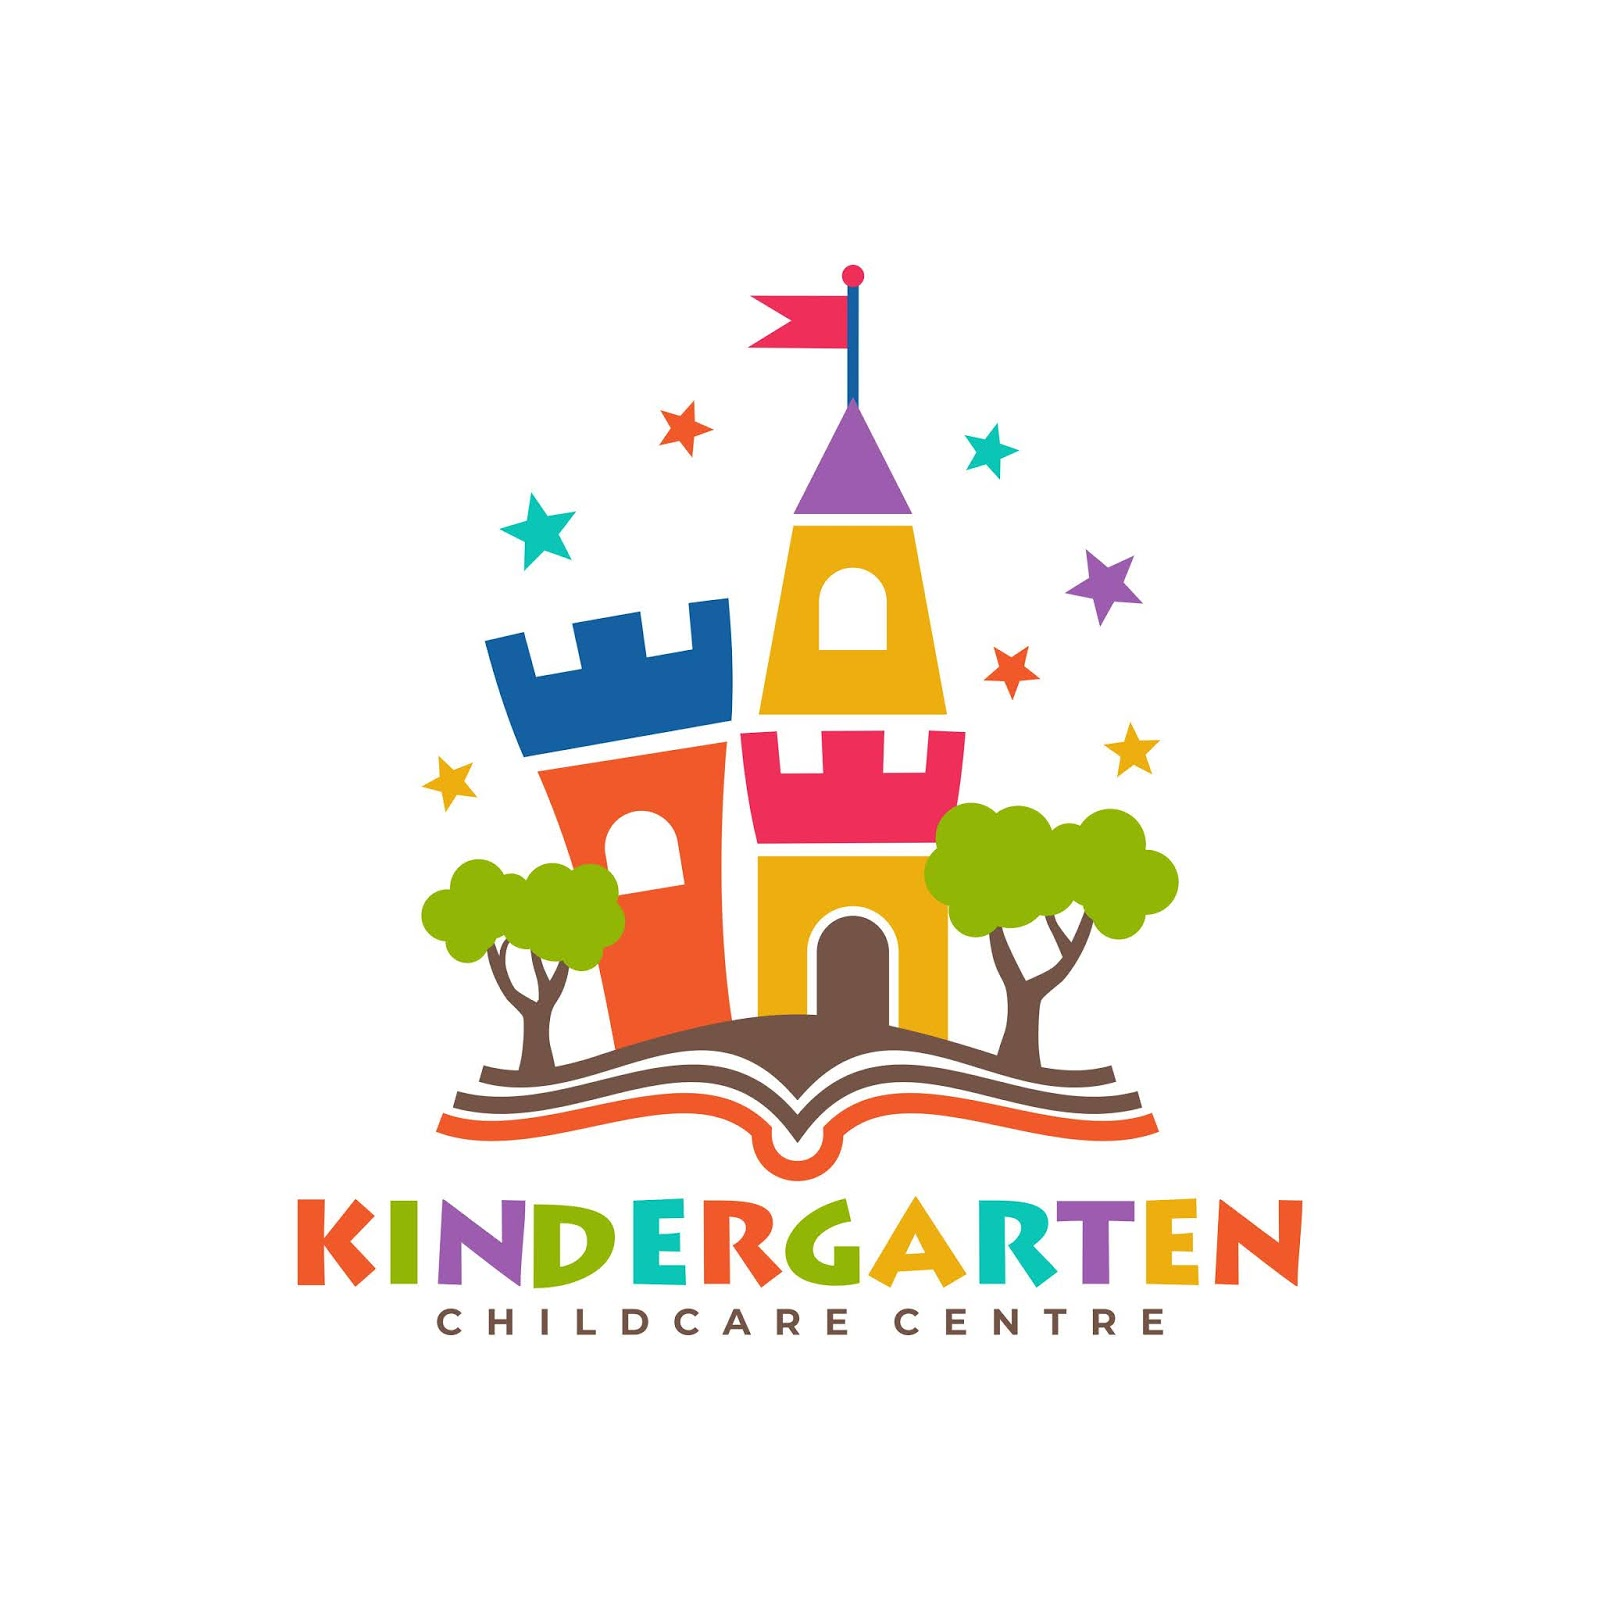 Kindergarten Logo Template Free Download Vector CDR, AI, EPS and PNG Formats